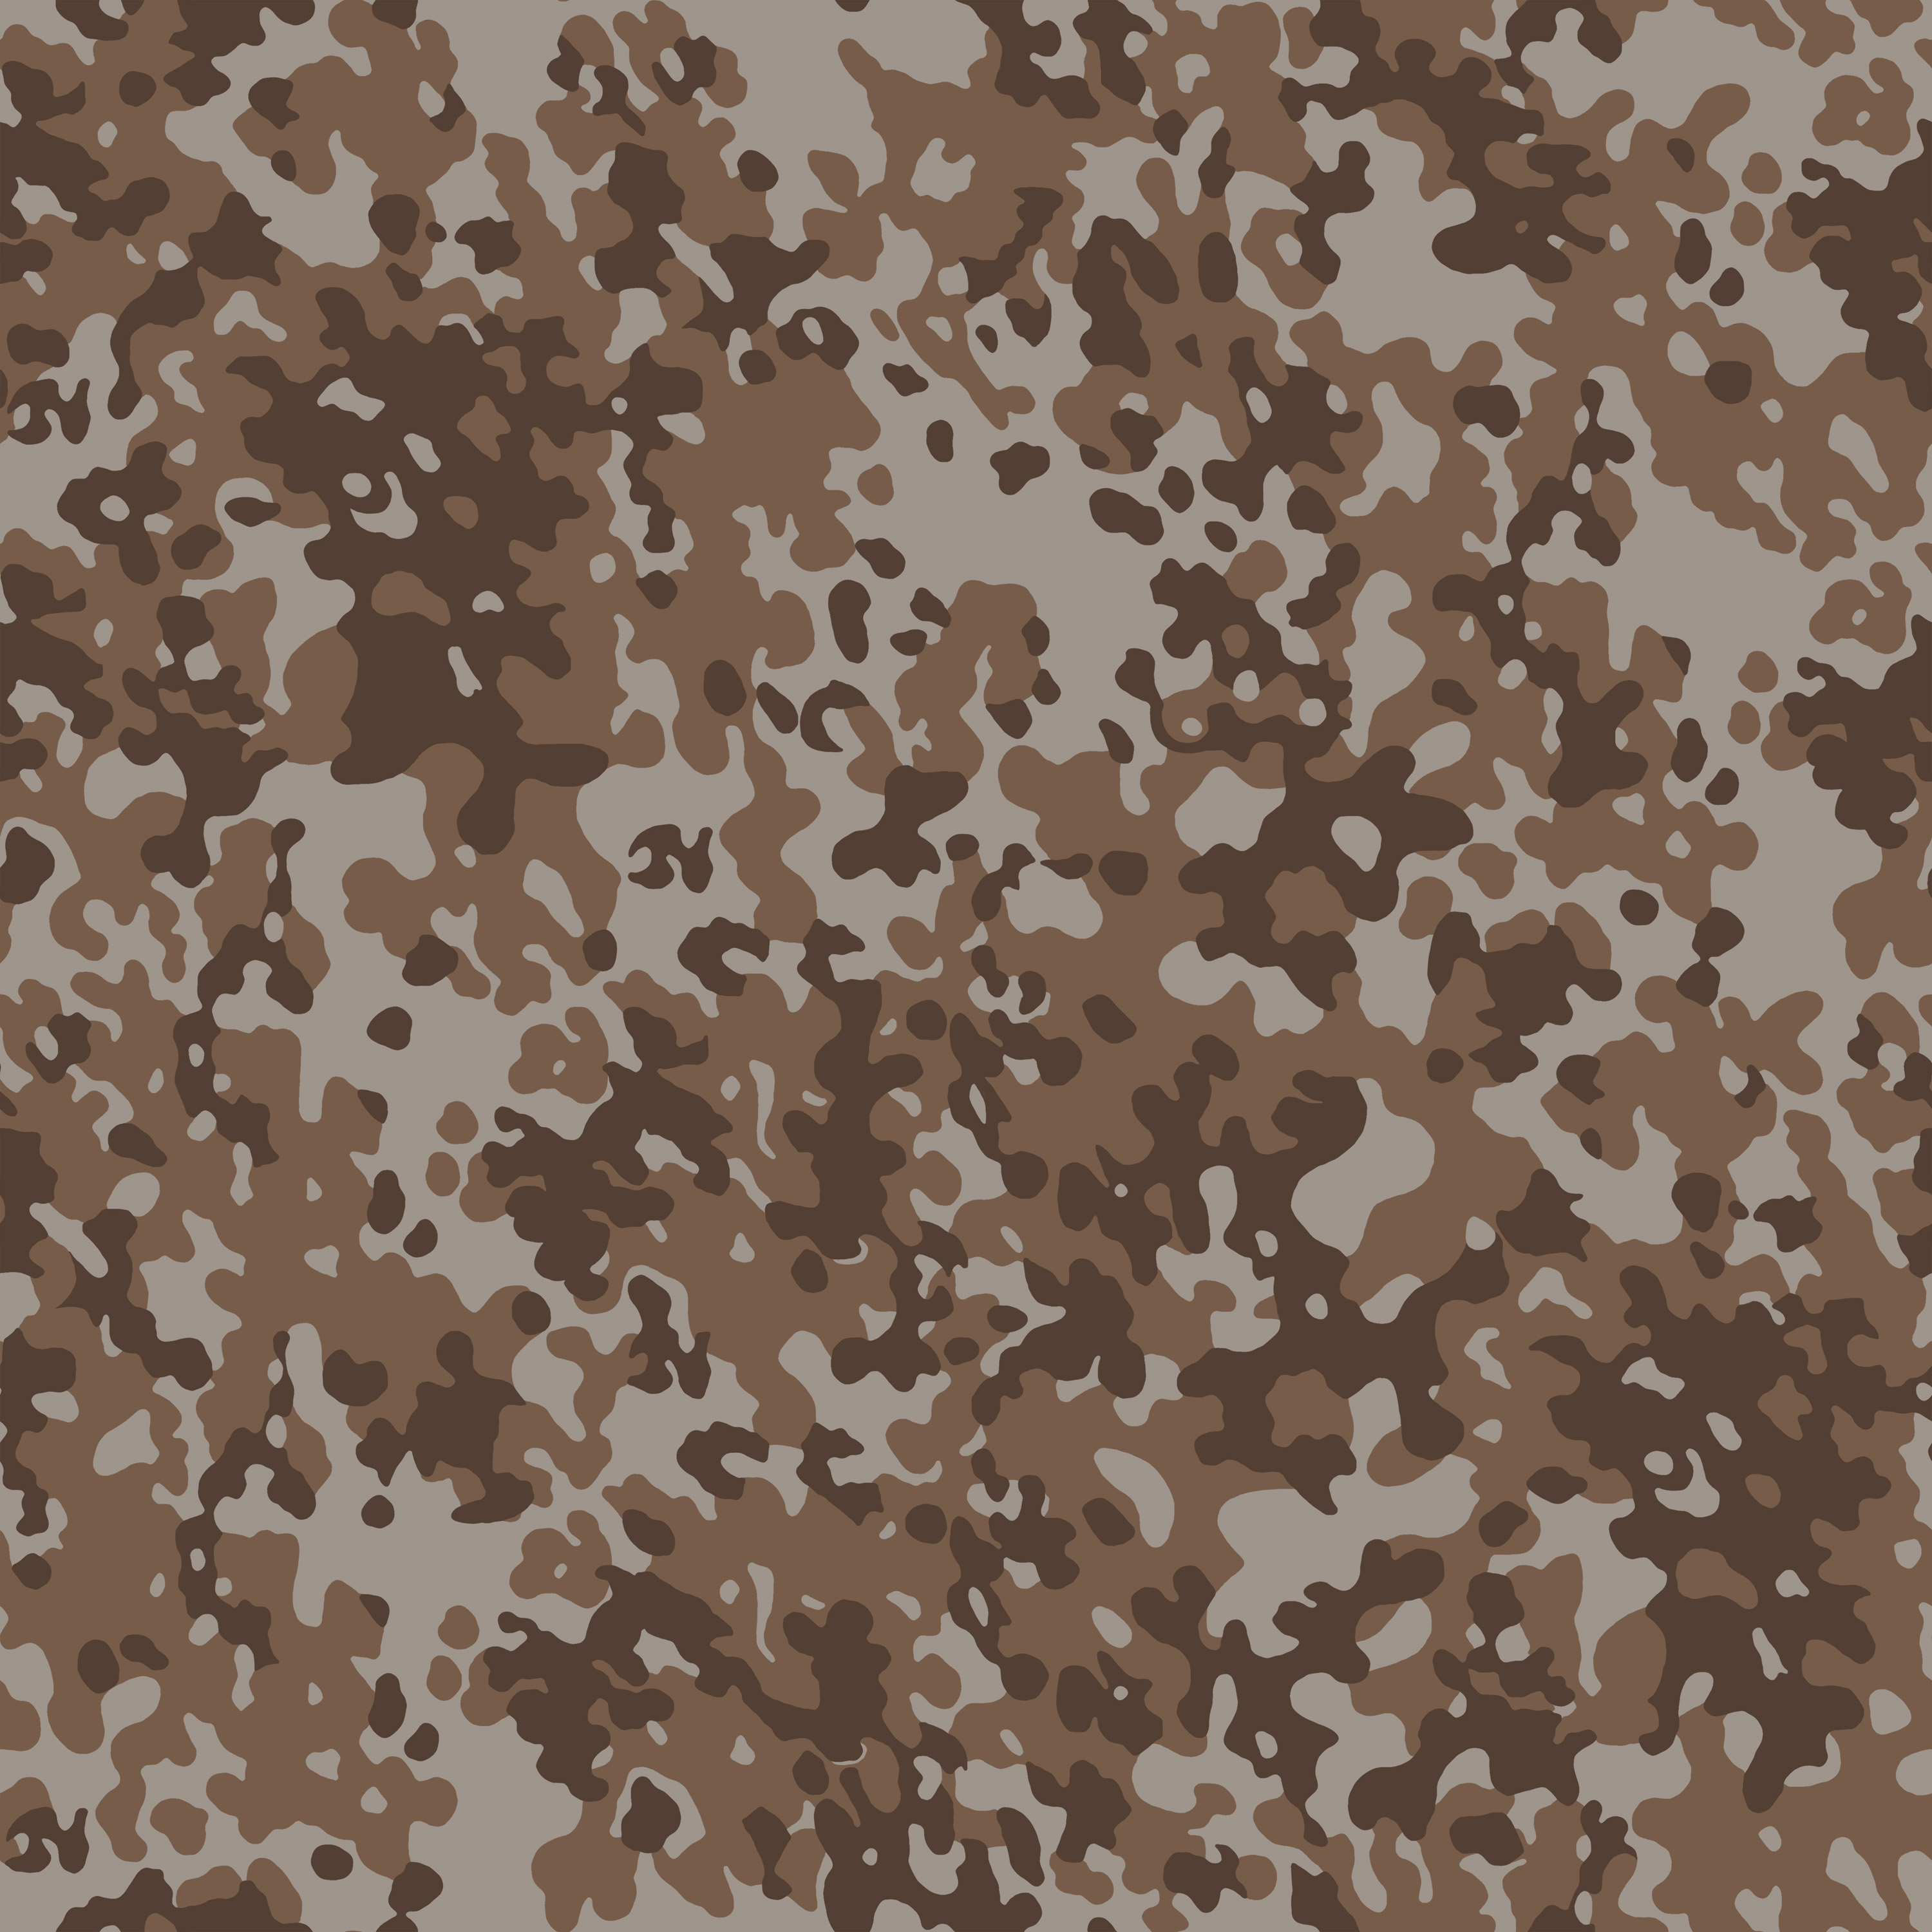 camouflage, texture, camouflage USA Marine Corps